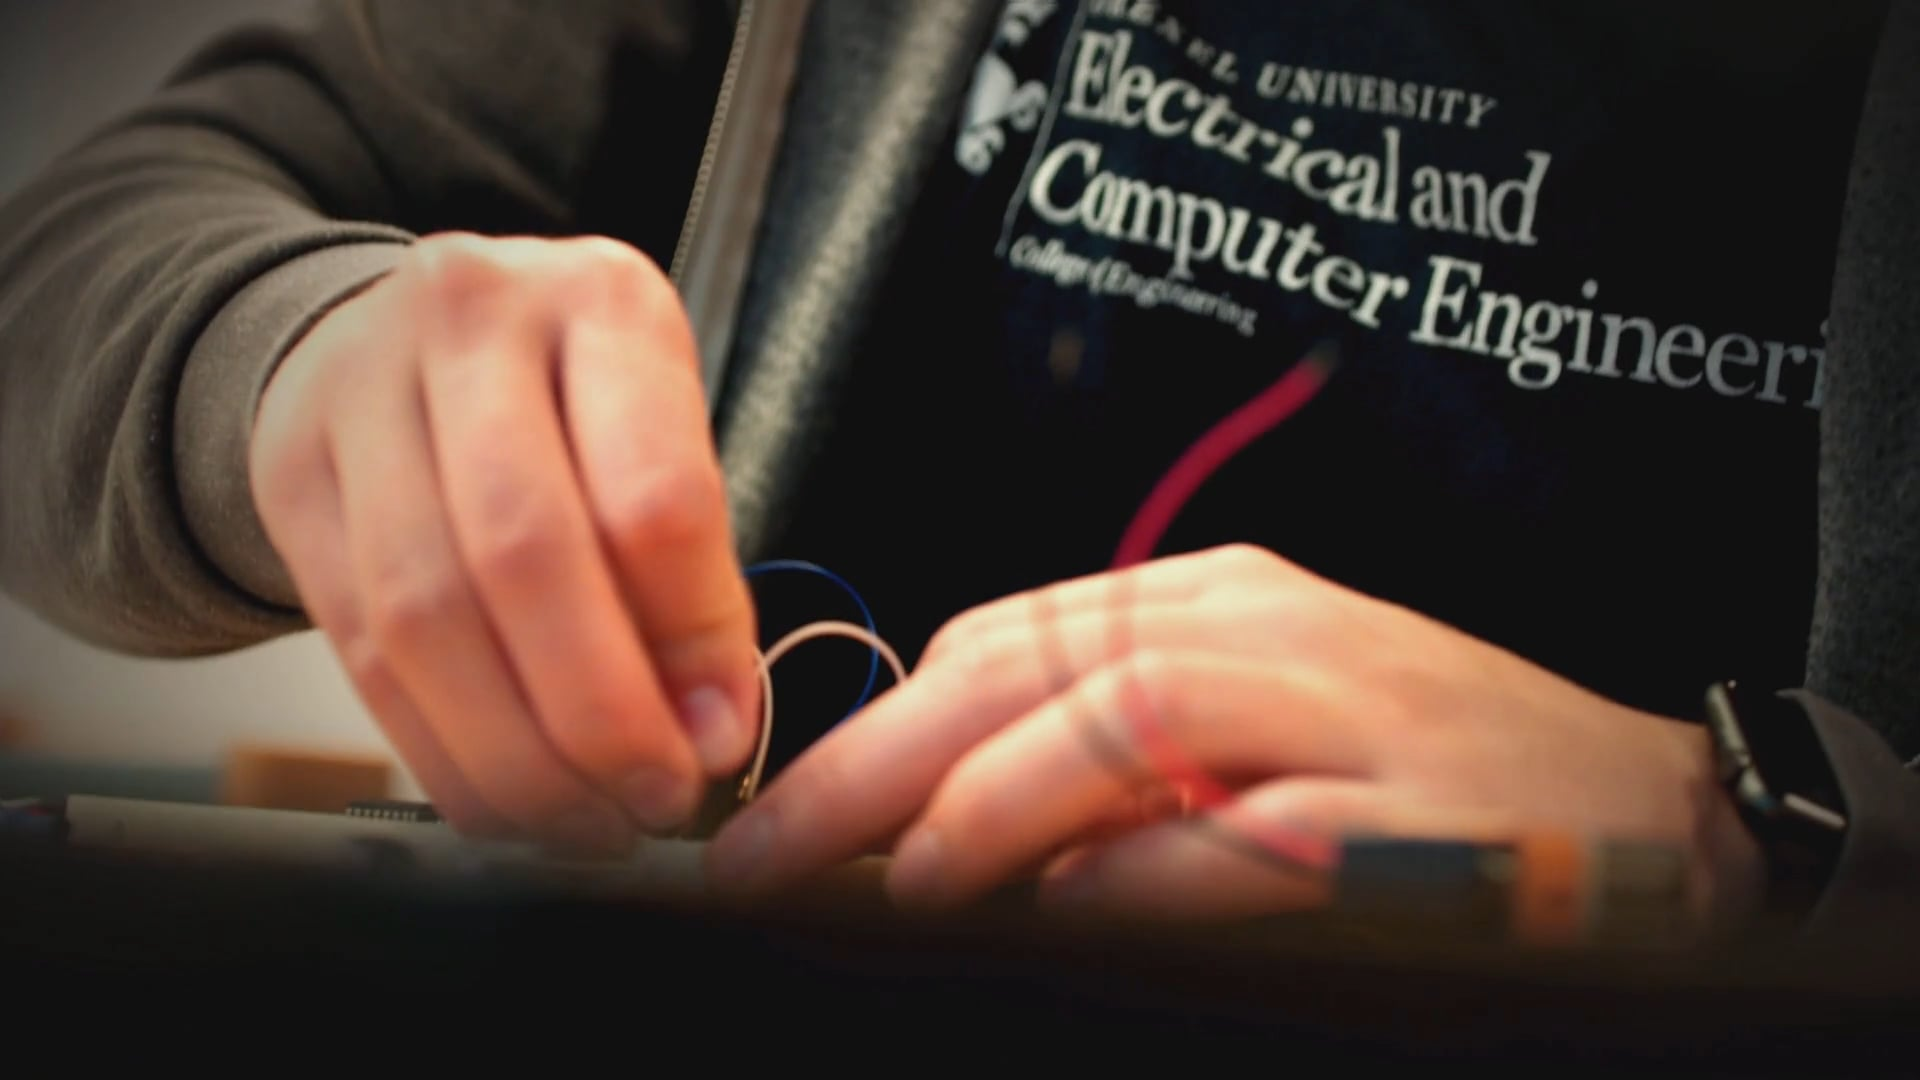 Drexel Electrical and Computer Engineering